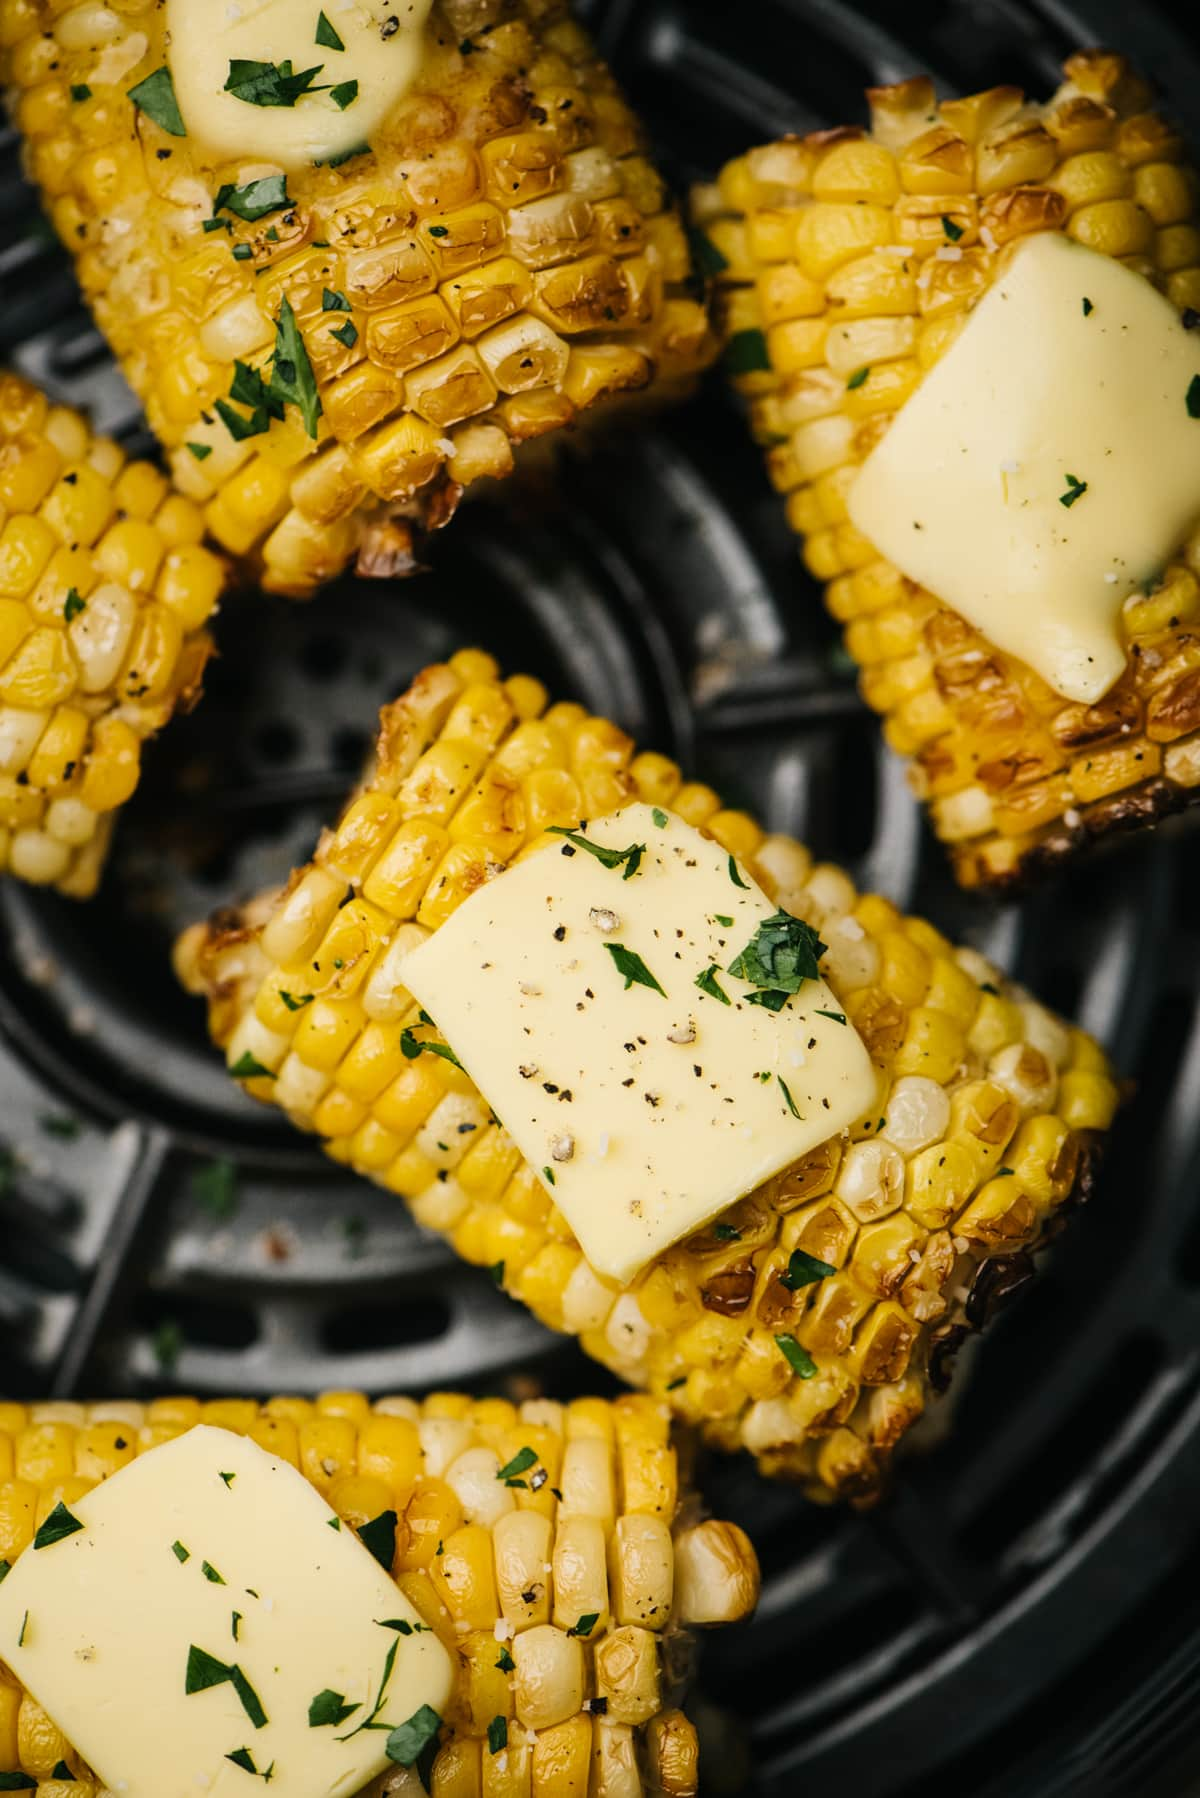 Air fryer corn on the cob topped with butter in the basket of an air fryer.